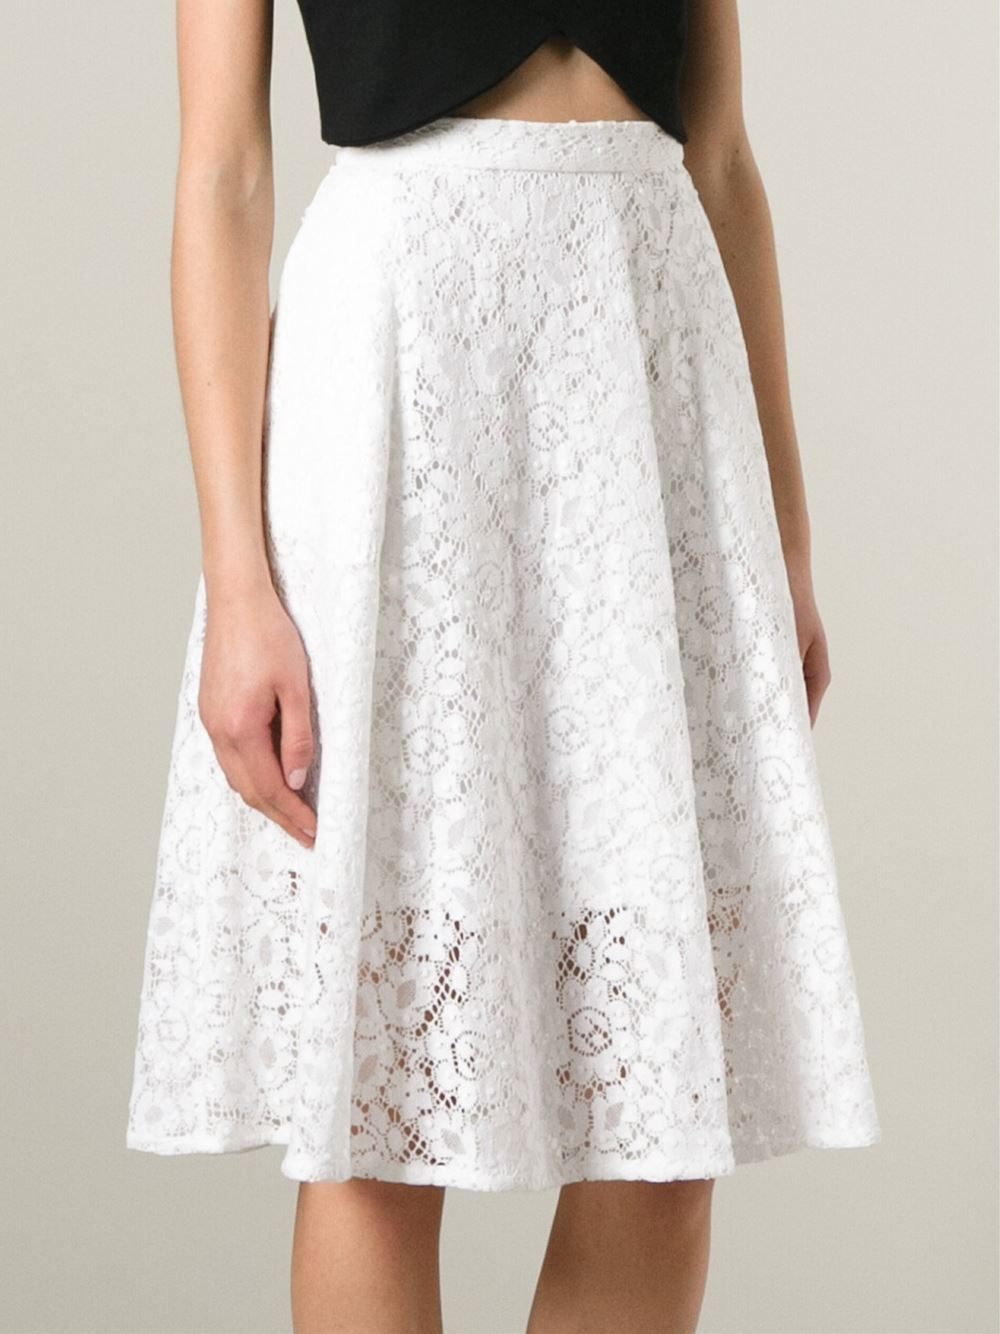 Forever 21 White Lace Skirt 21 Skirts LAce Skirt Outfit Ideas CAn I Buy a White Lace Skirt Skirts Skirts Blouse VAidosa Outfits Find Lace skirt give an attractive and decent look. Such type of dressing give you a mature and decent feelings.